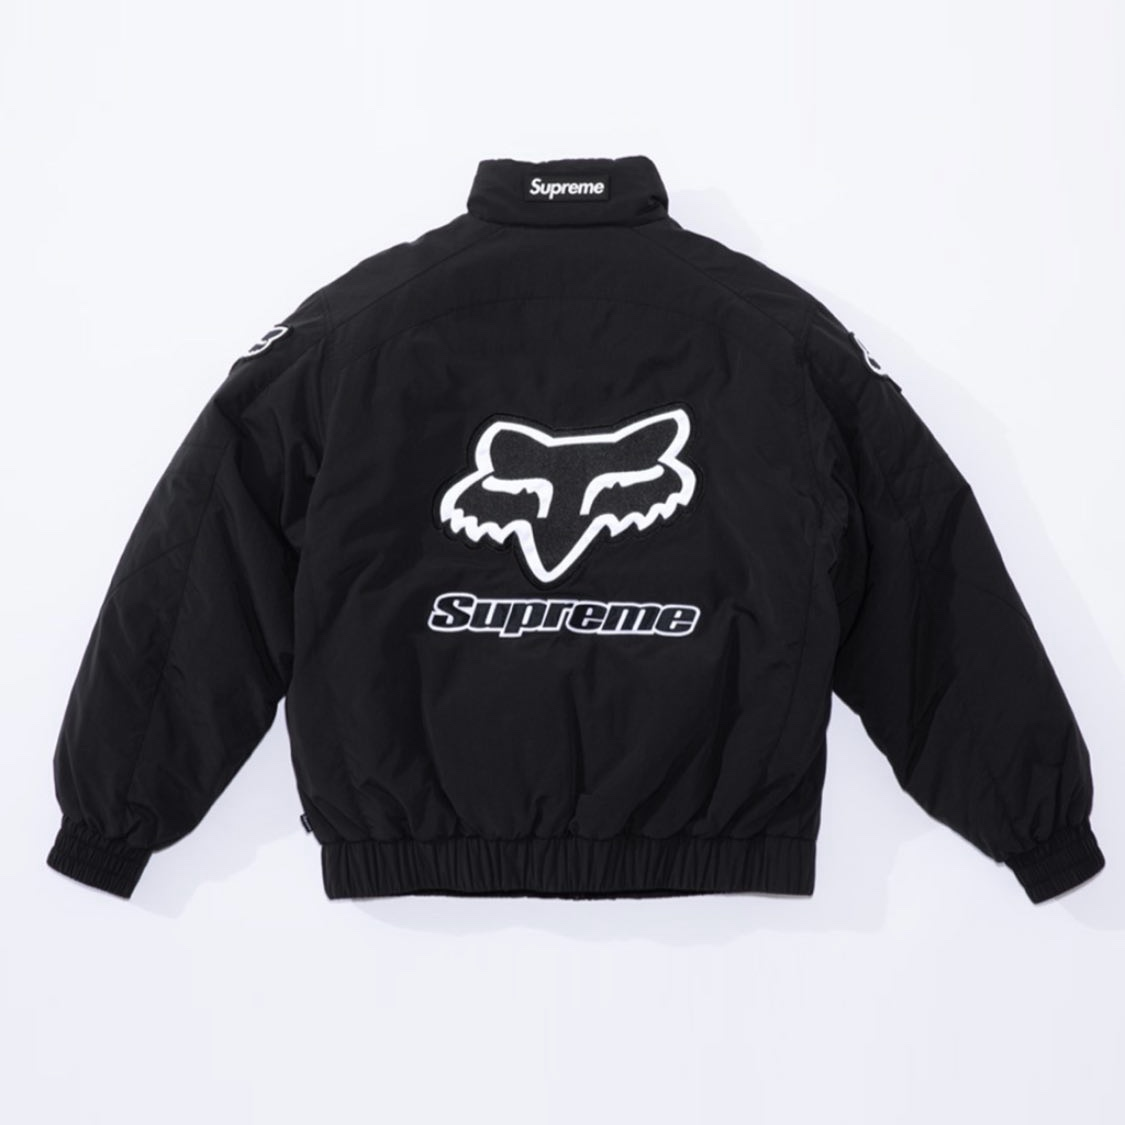 supreme-20aw-20fw-supreme-fox-racing-puffy-jacket